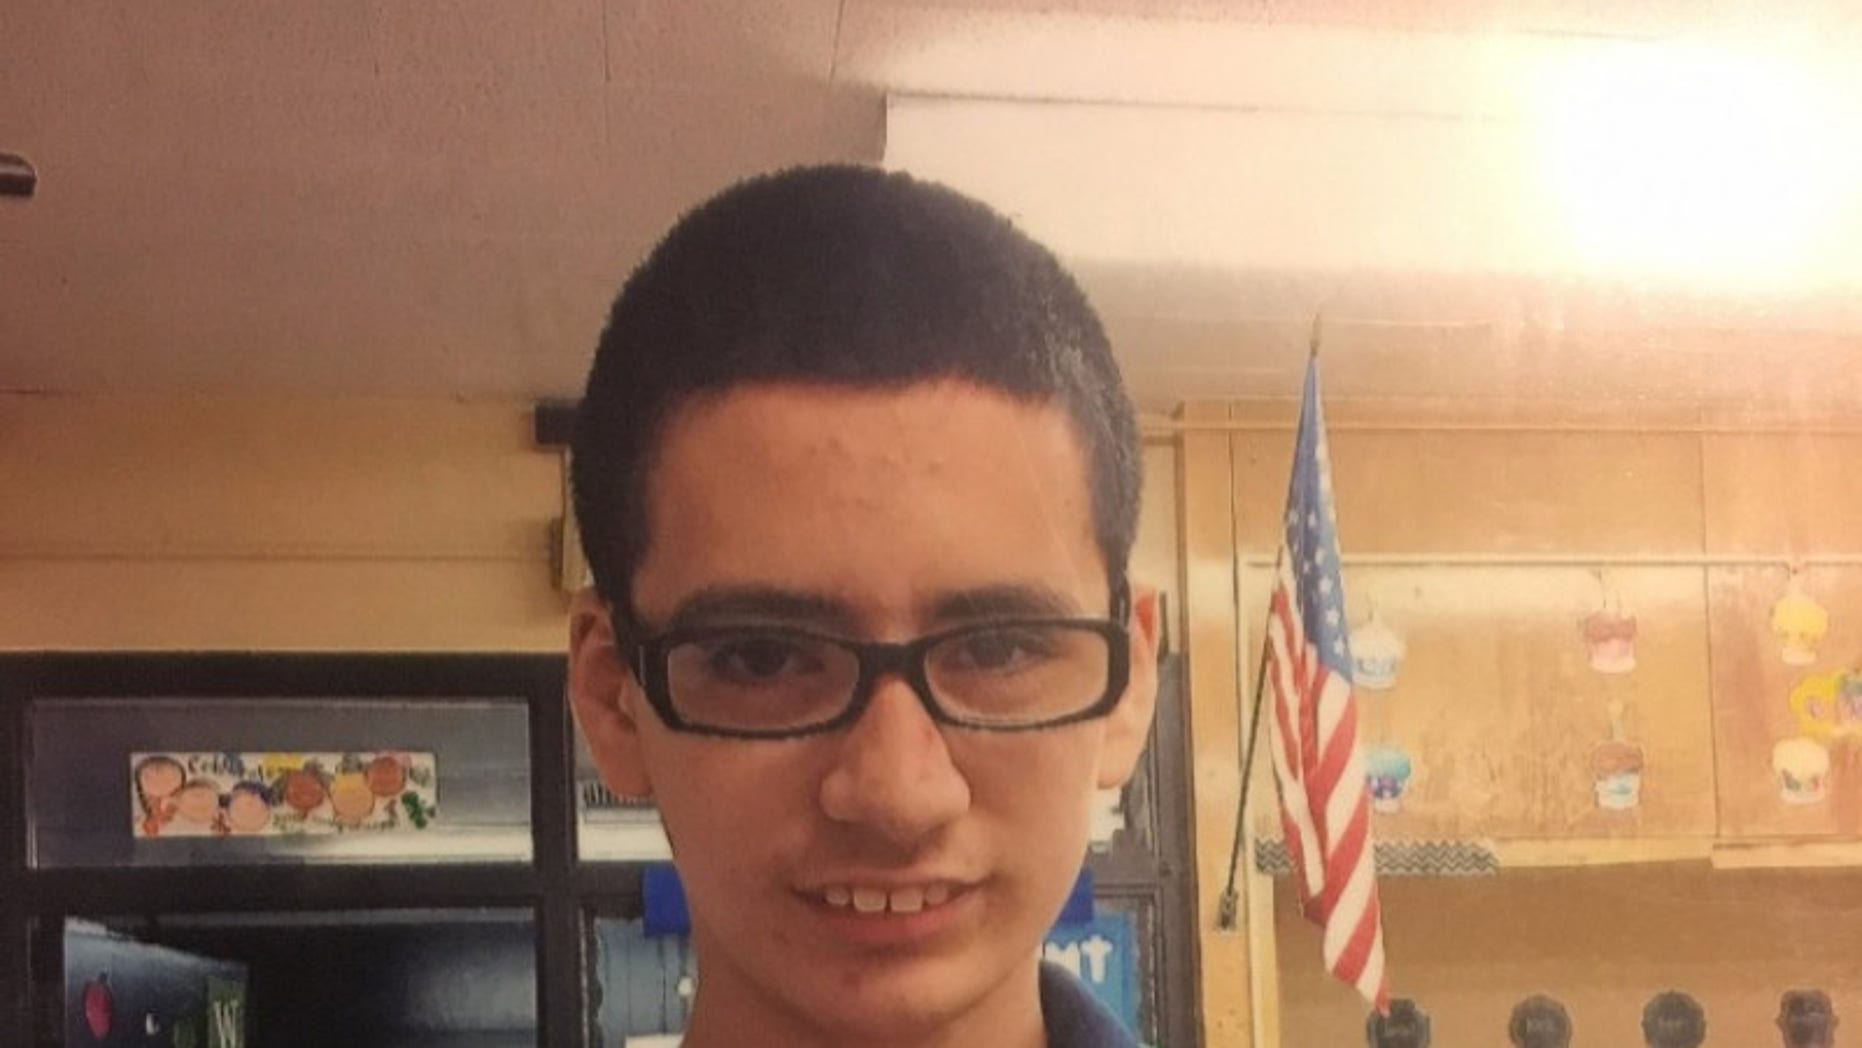 Rosario Gomez, 14, was swimming with his classmates on Jan. 25 when he drowned.